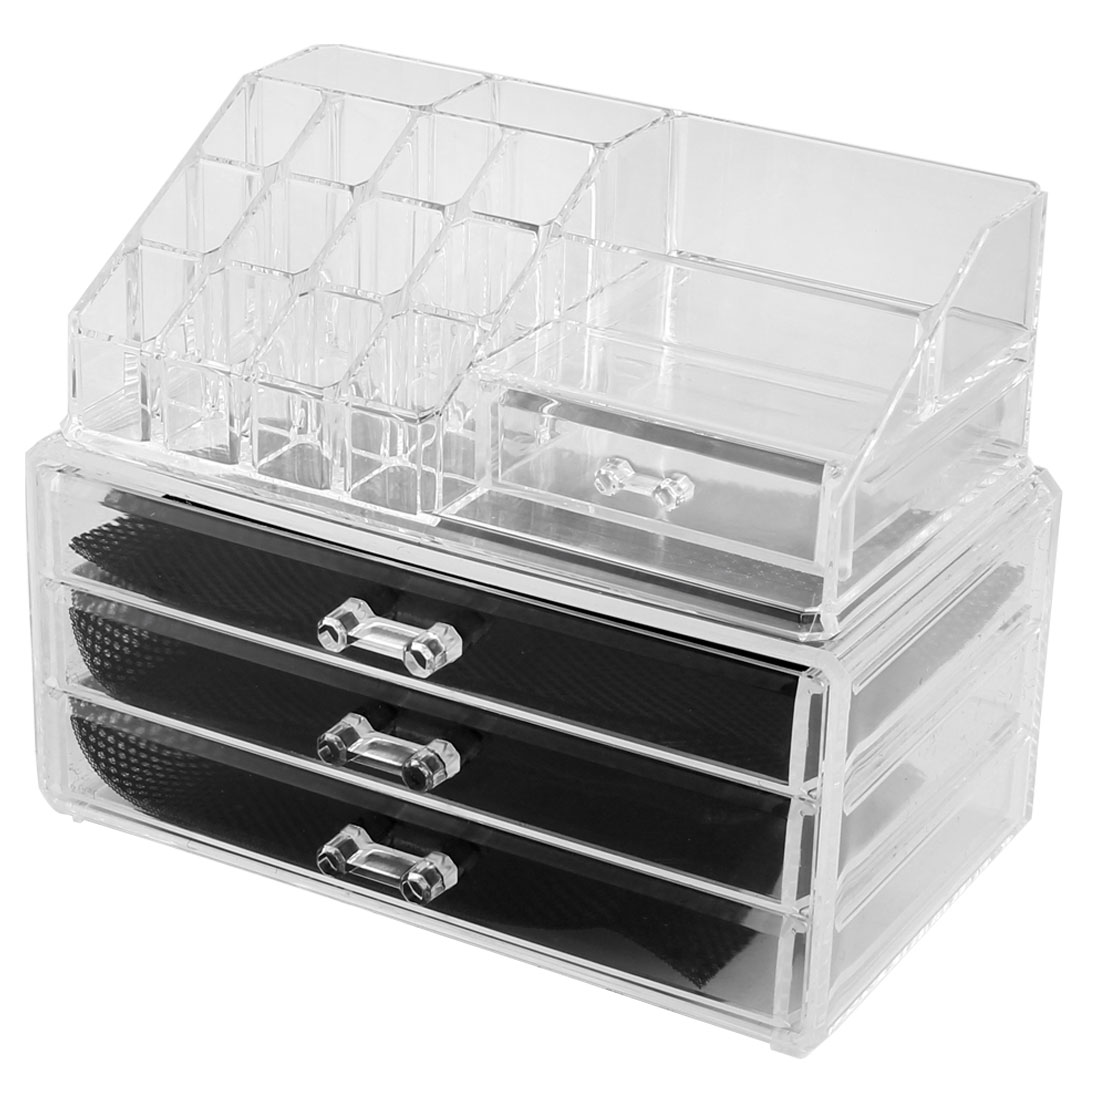 Home Acrylic Multichamber Transparent Jewelry Makeup Holder Oganizer Set 2 in 1